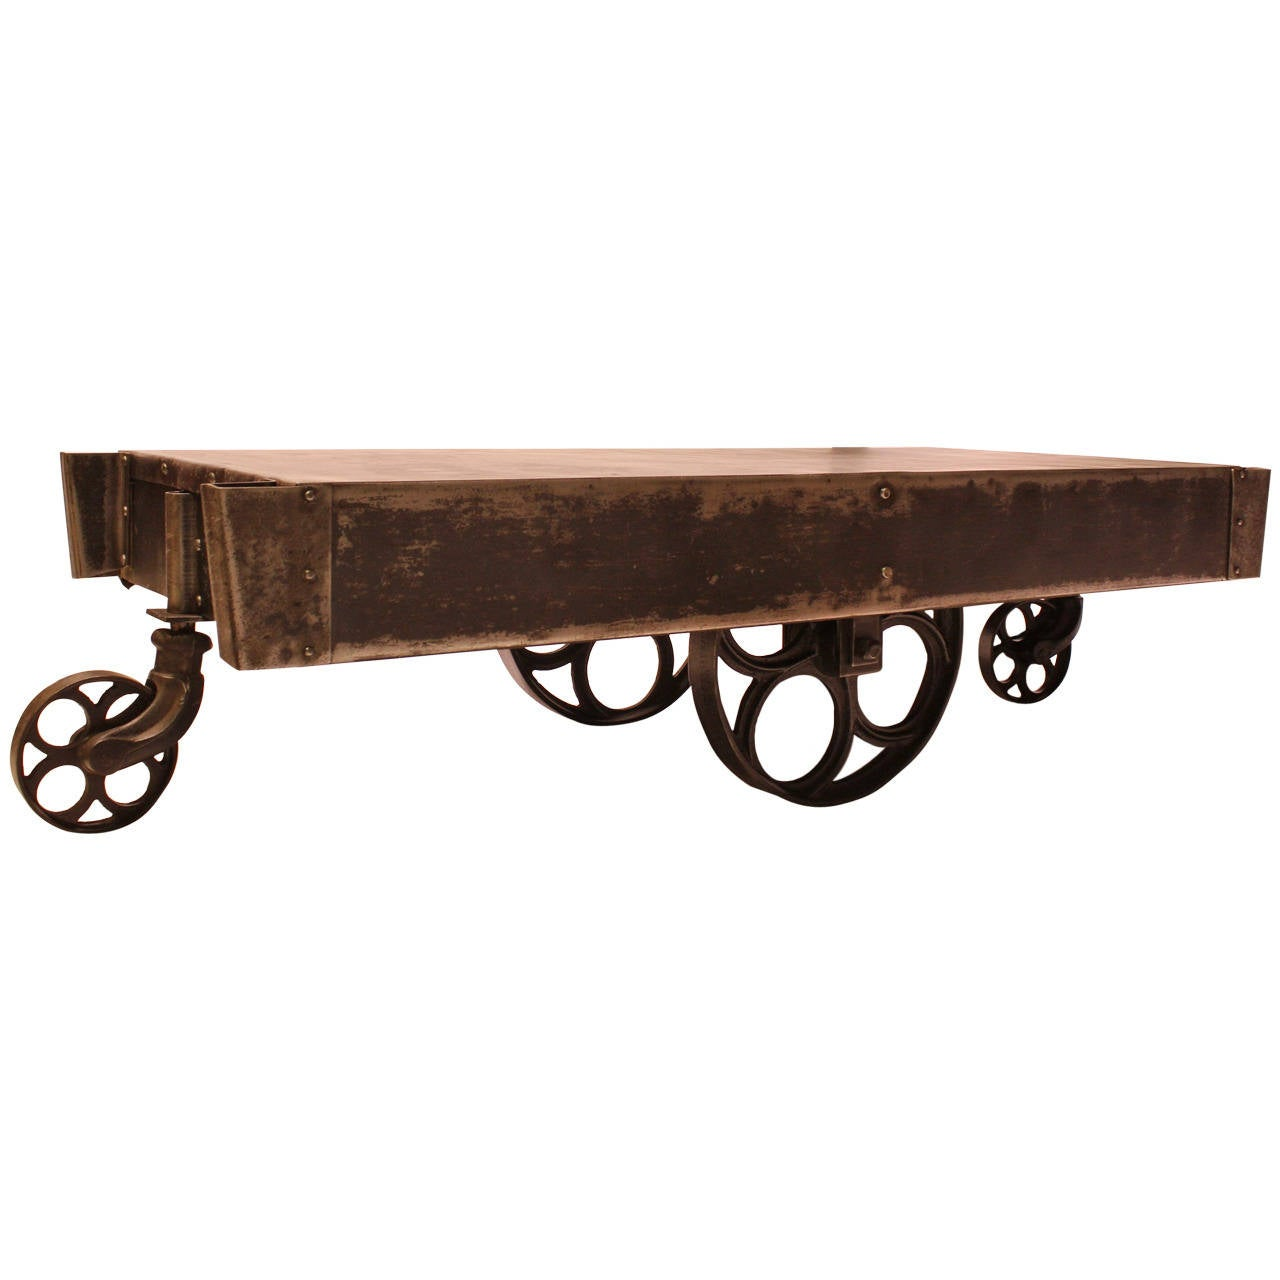 Antique Industrial Cart Coffee Table: Stylish Antique American Industrial Steel Cart Or Coffee